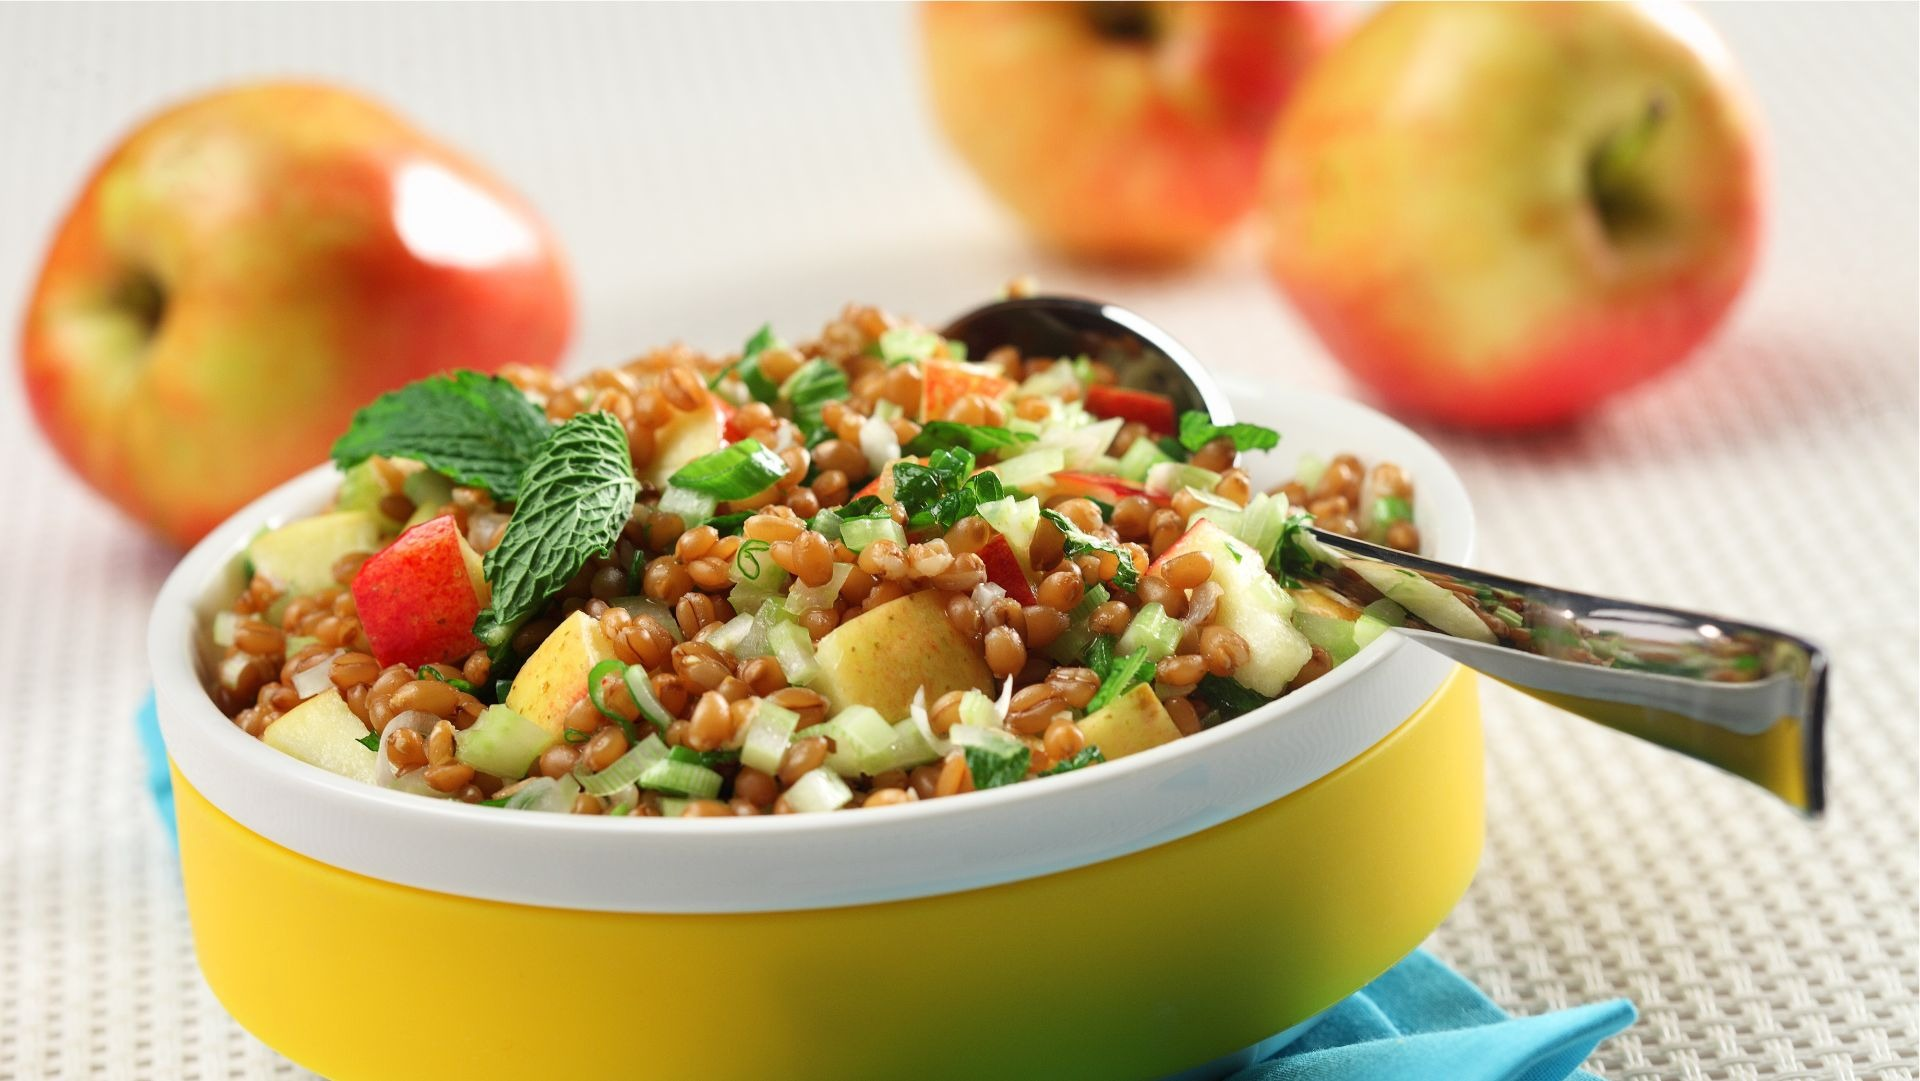 Wheat berry and apple salad in a yellow bowl on a blue napkin.